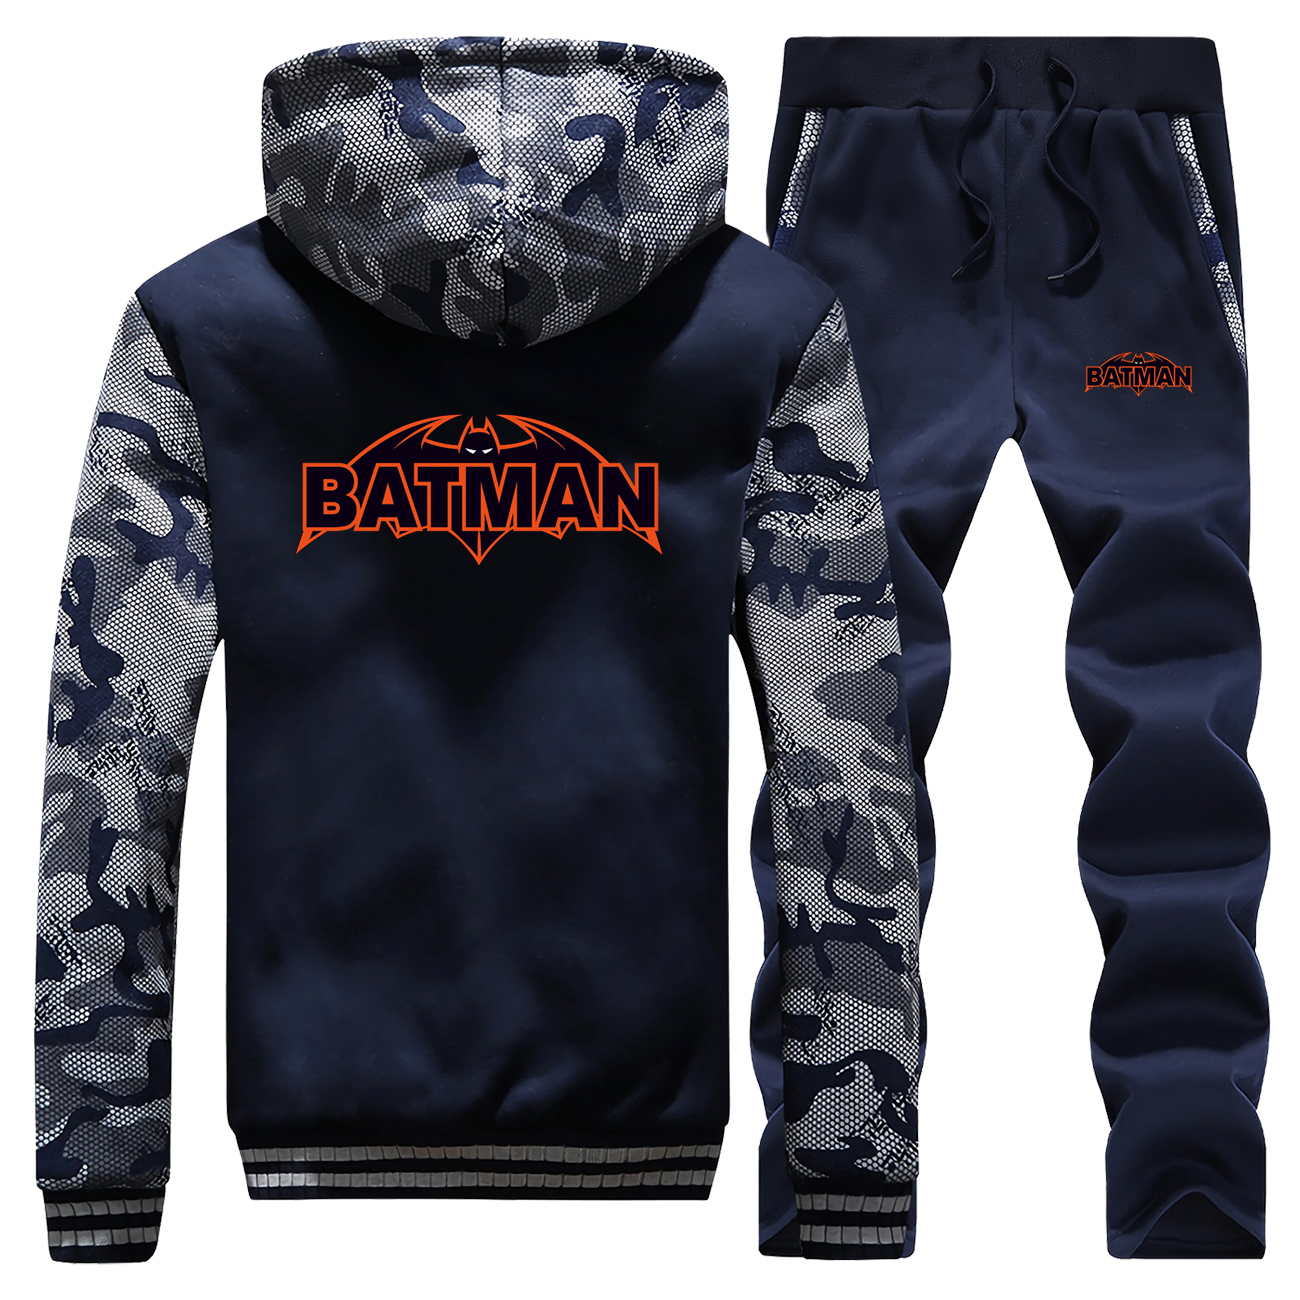 Funny Superhero Batman Camo Hoodies Pants 2pcs Sets Sweatshirt Men Hip Hop Tracksuit Winter Casual Fleece Streetwear Sportswear